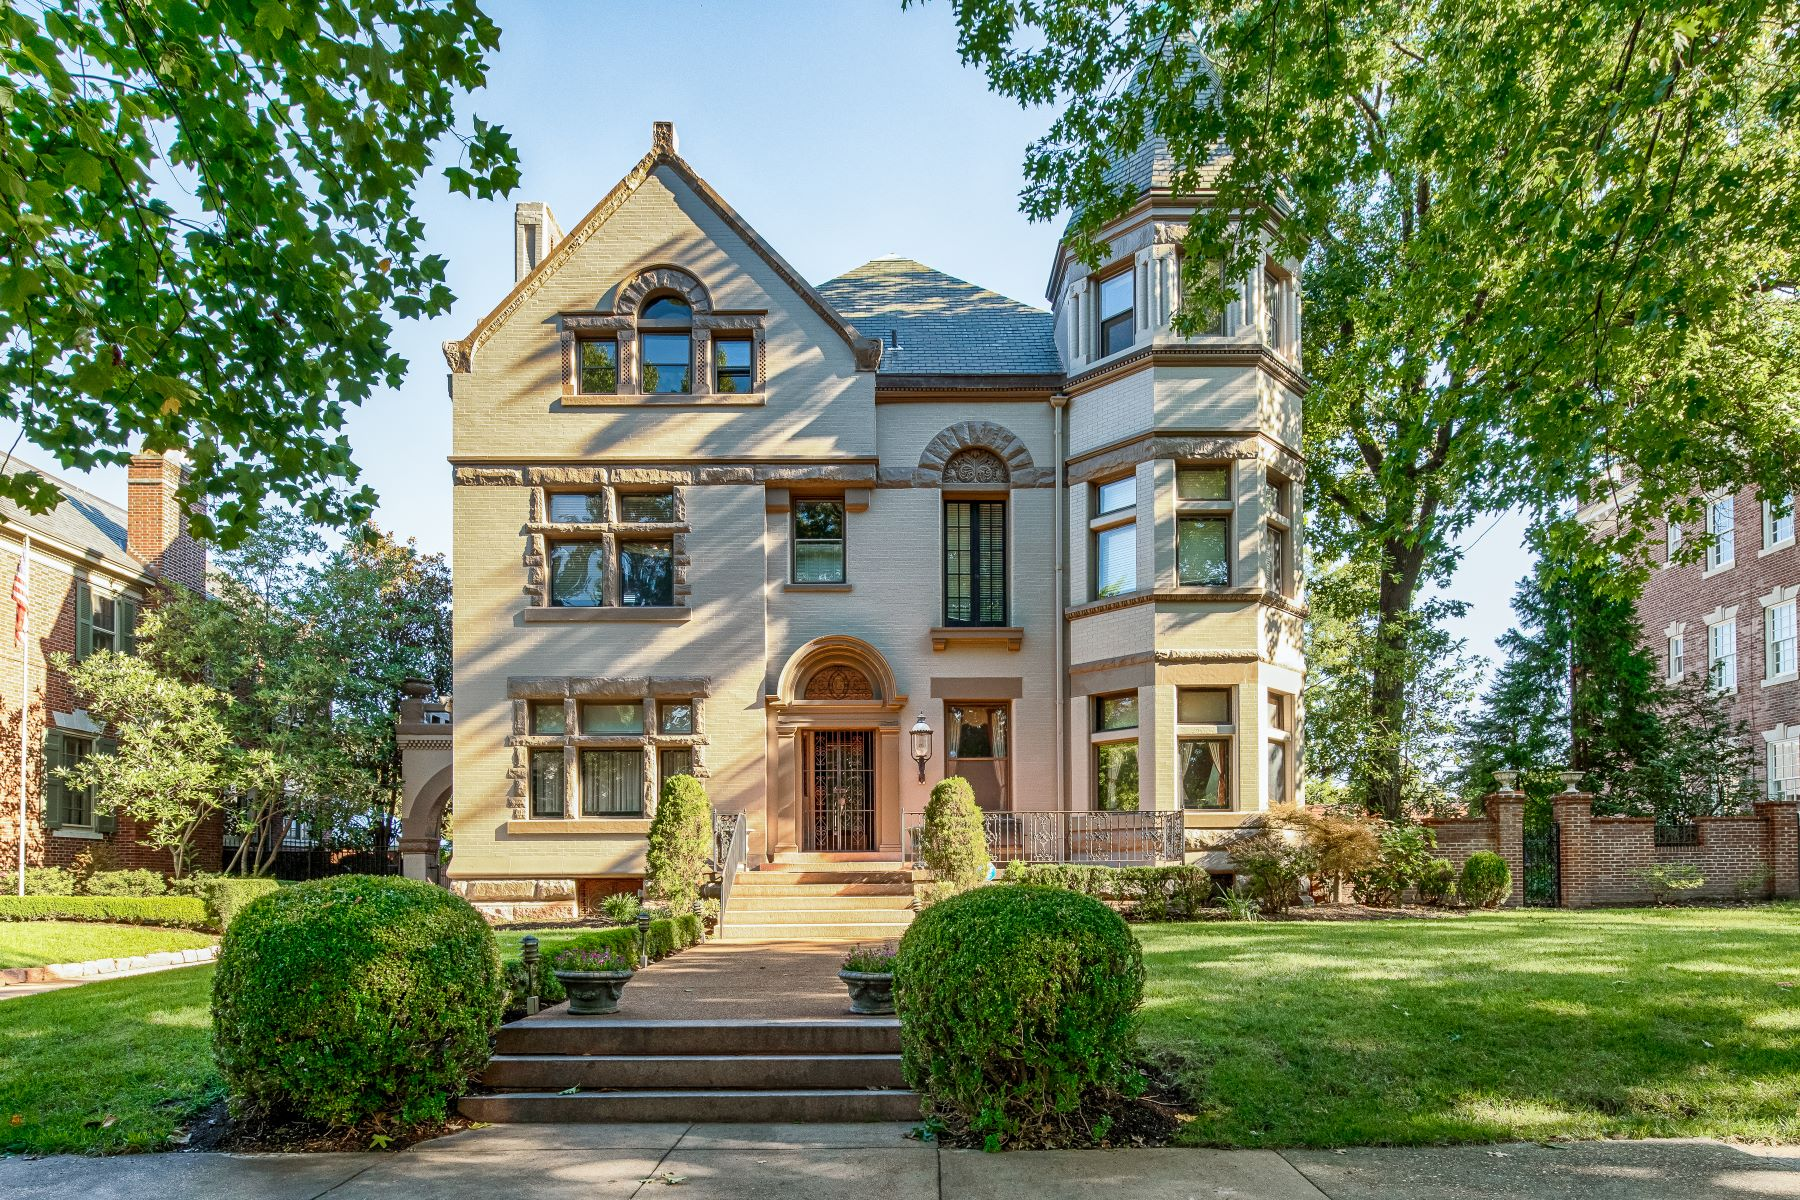 Single Family Homes for Sale at Regal Queen Anne Style Mansion 39 Portland Place St. Louis, Missouri 63108 United States